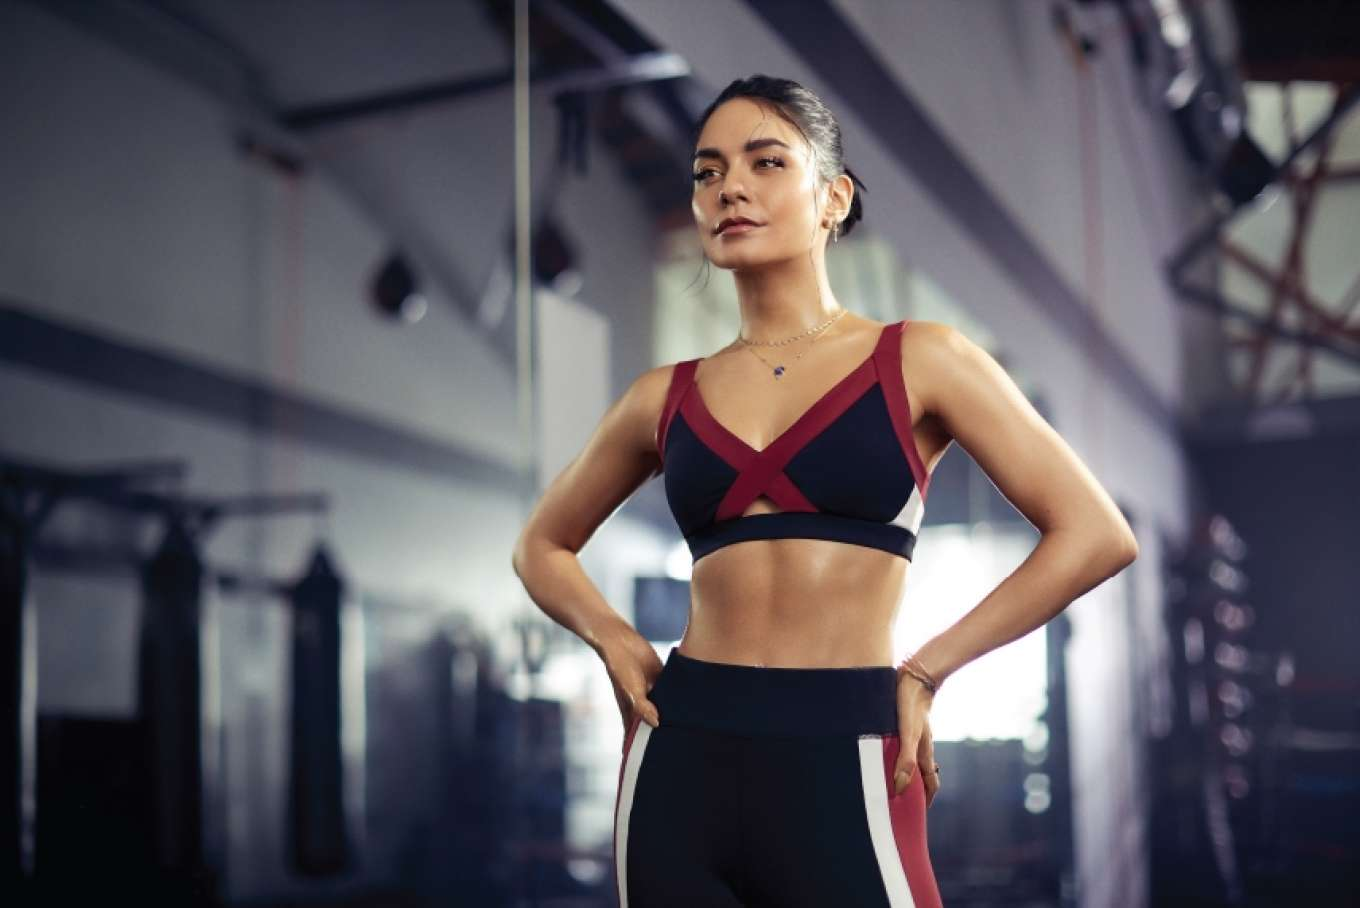 Vanessa Hudgens 2019 : Vanessa Hudgens – Vanessa Hudgens Collection x Avia Fitness 2019-02